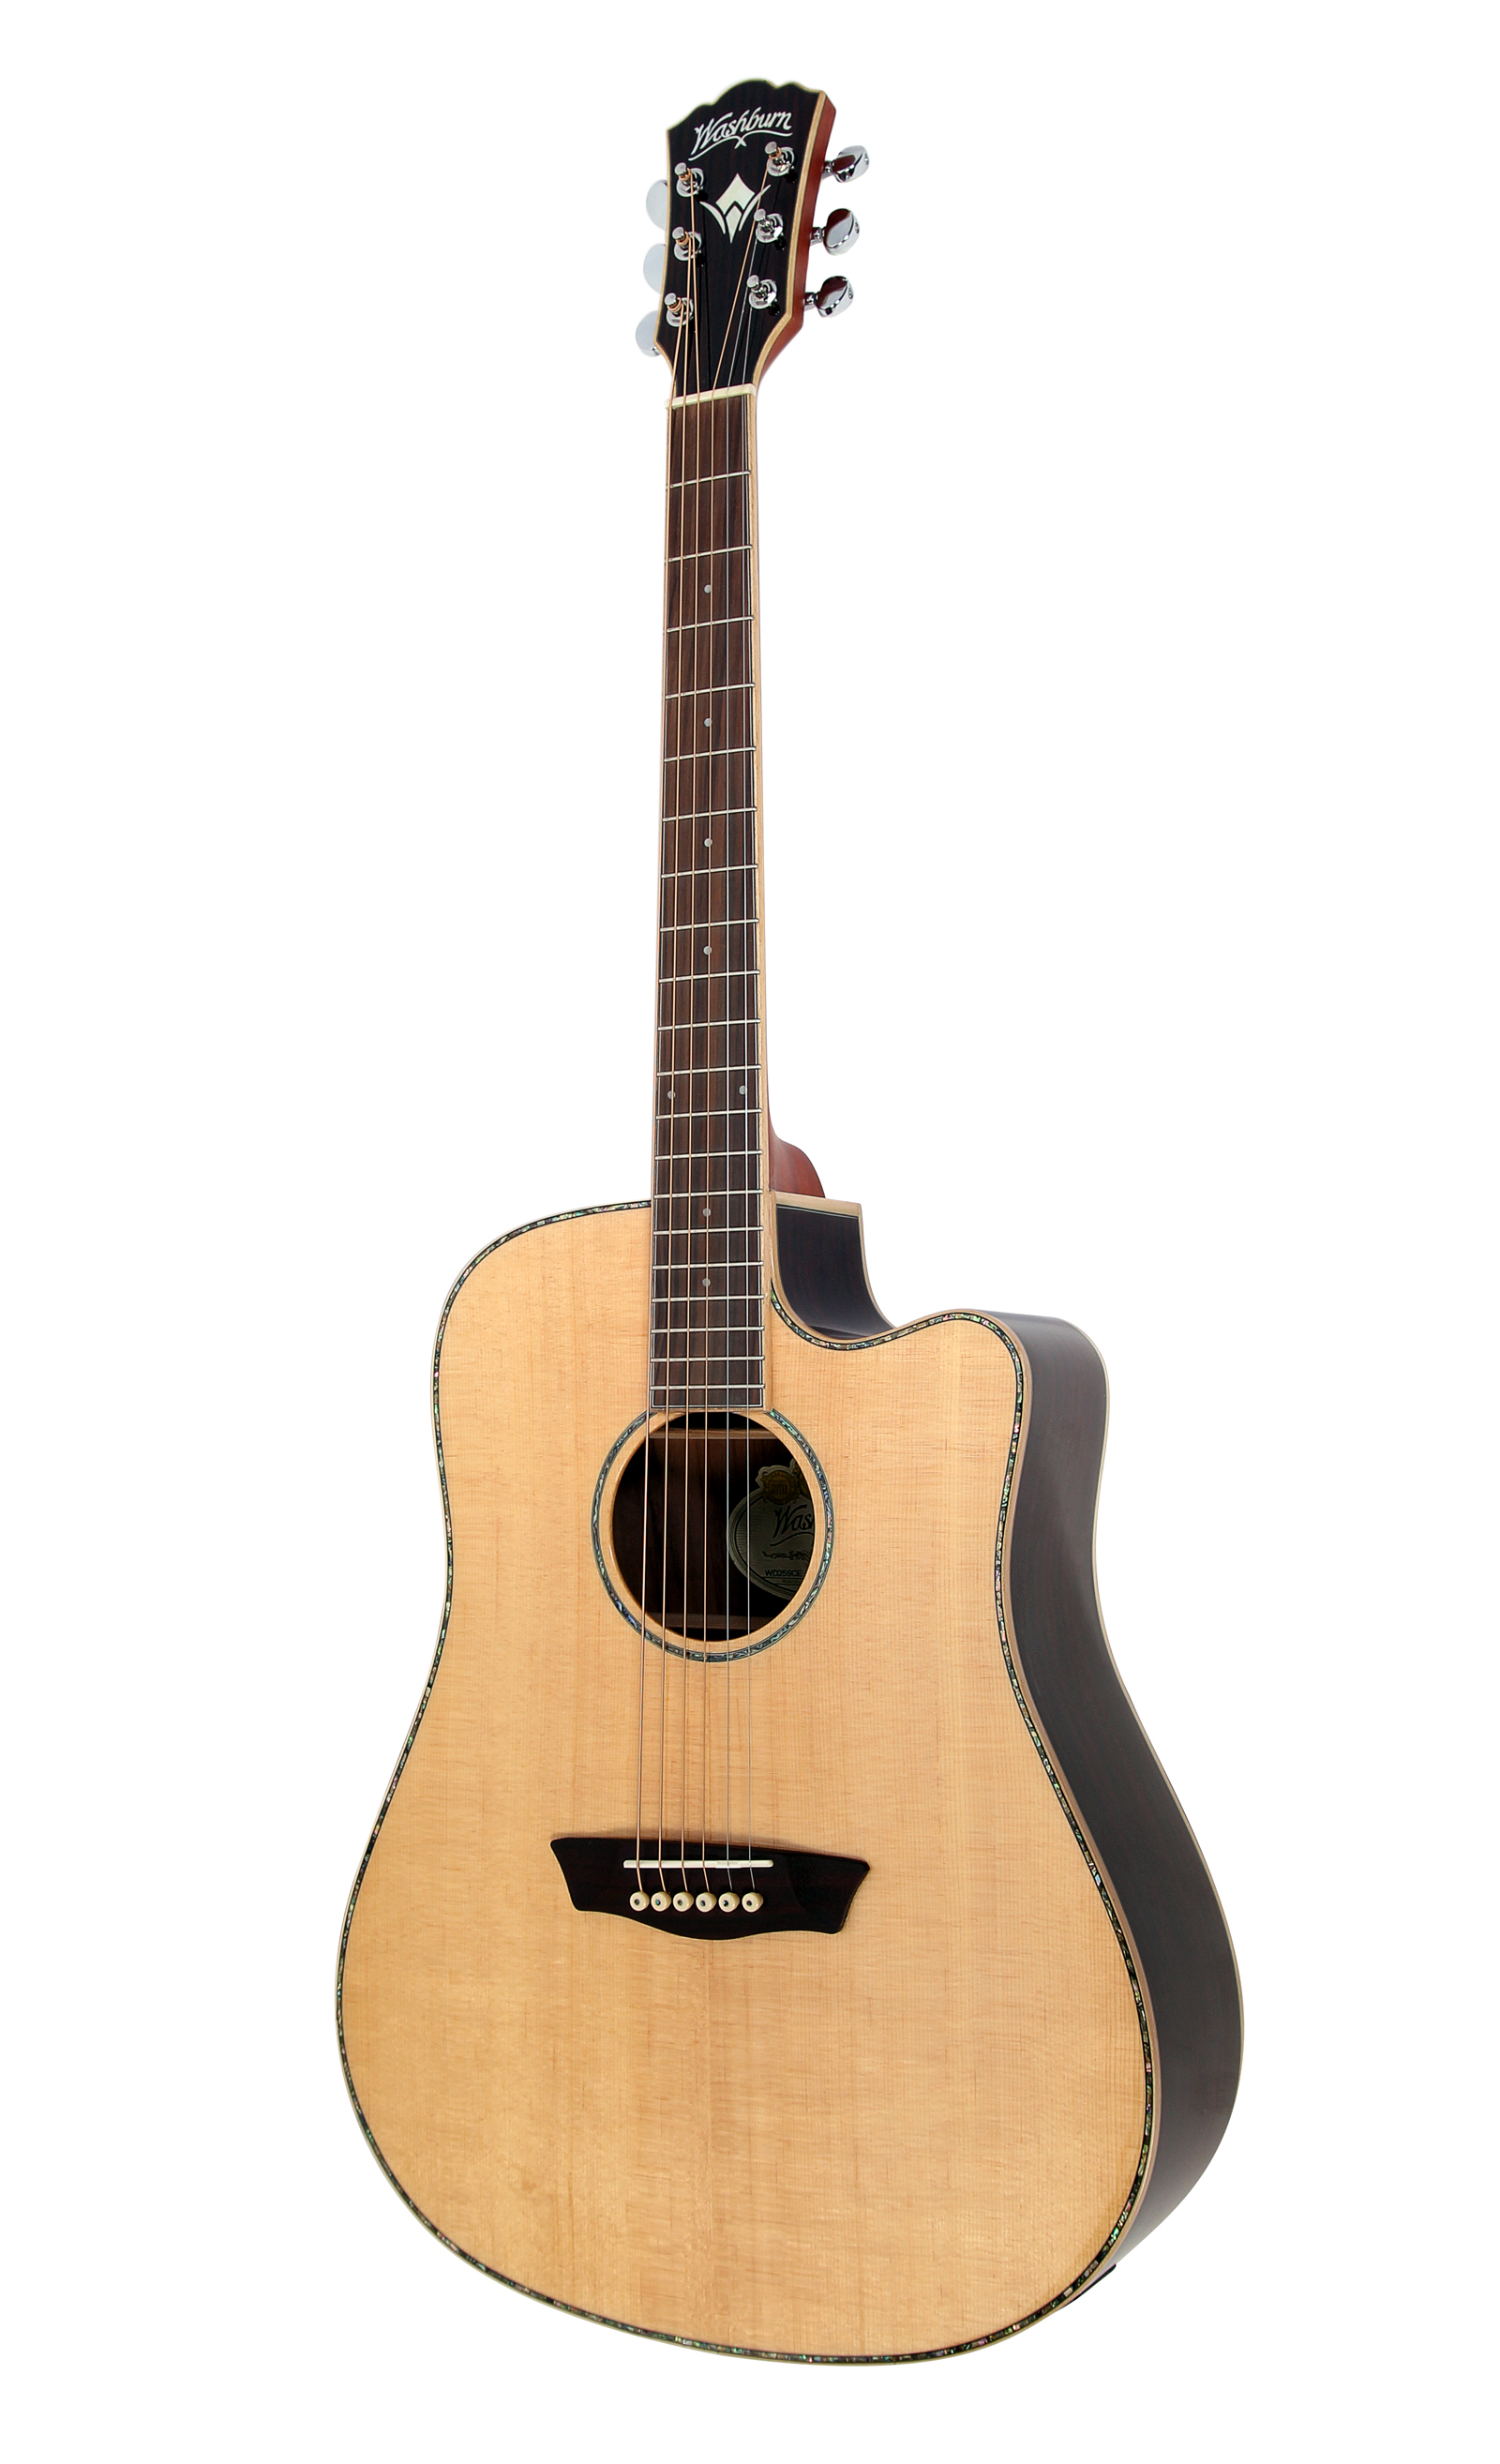 washburn wd25 series wd25sce acoustic electric guitar with deluxe hardshell case ebay. Black Bedroom Furniture Sets. Home Design Ideas